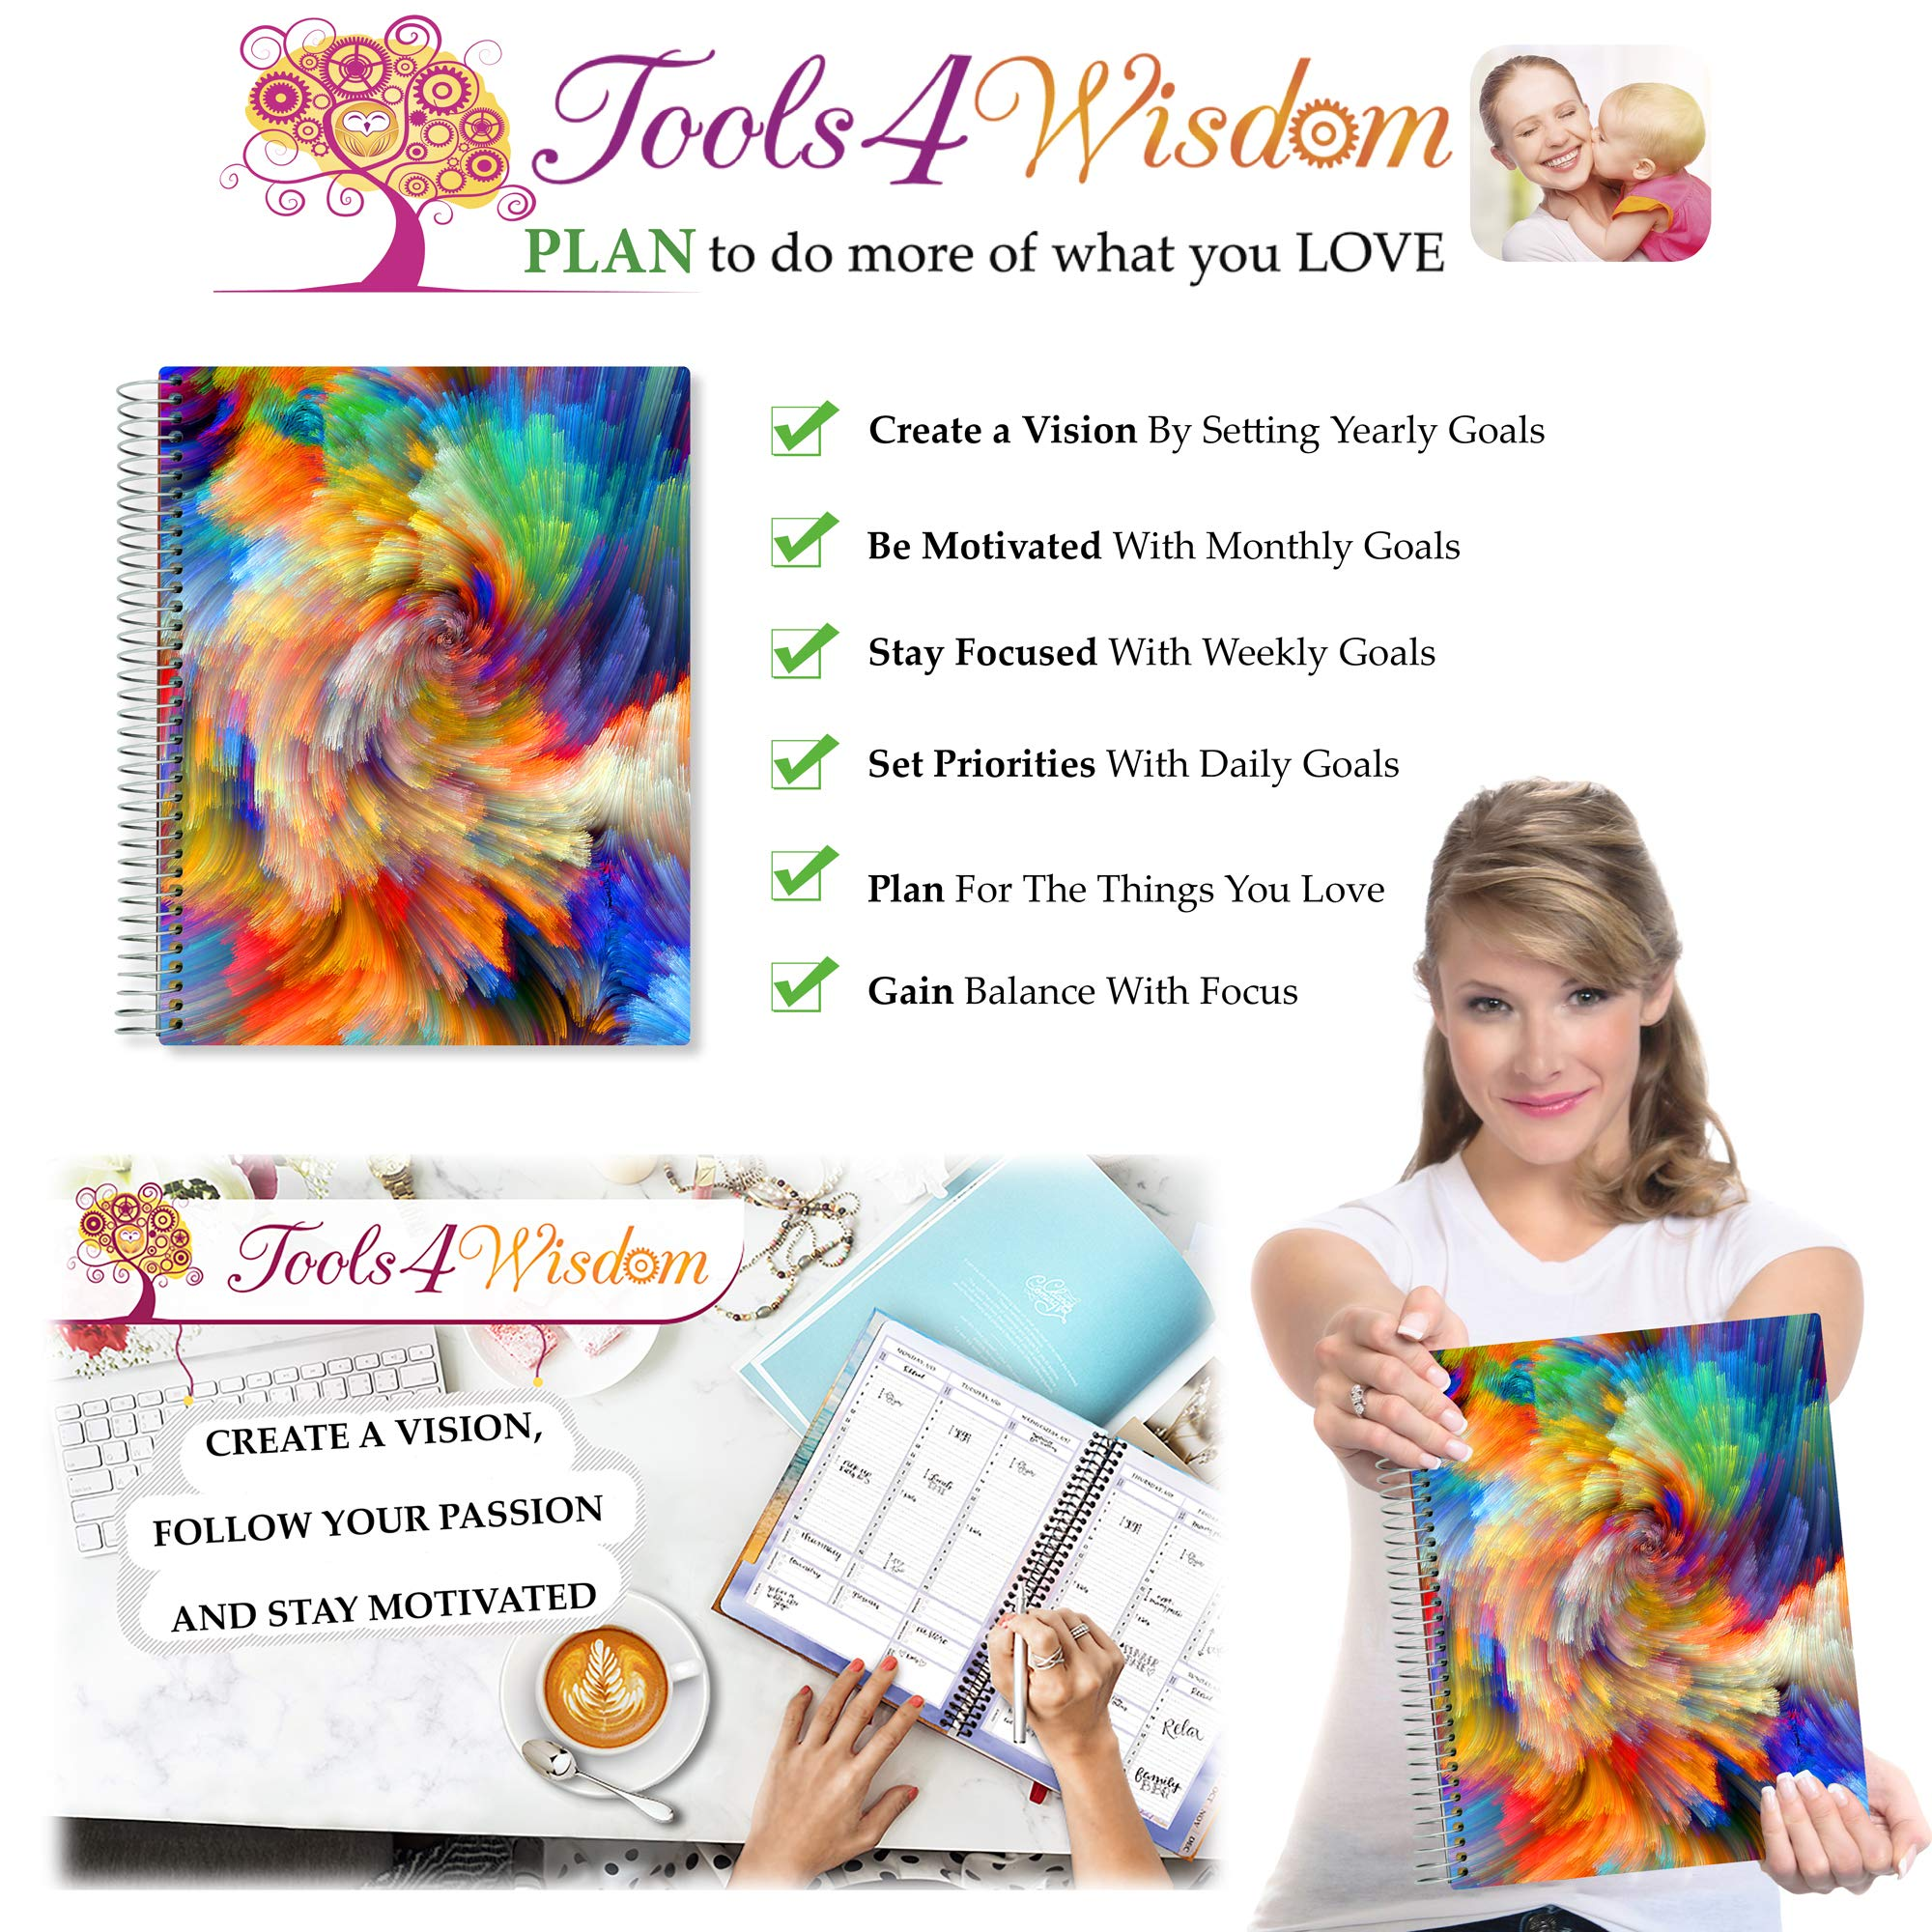 Tools4Wisdom April 2019-2020 Planner - Daily Weekly Monthly Academic Planner Calendar Year - 8.5'' x 11'' Hardcover by Tools4Wisdom (Image #9)